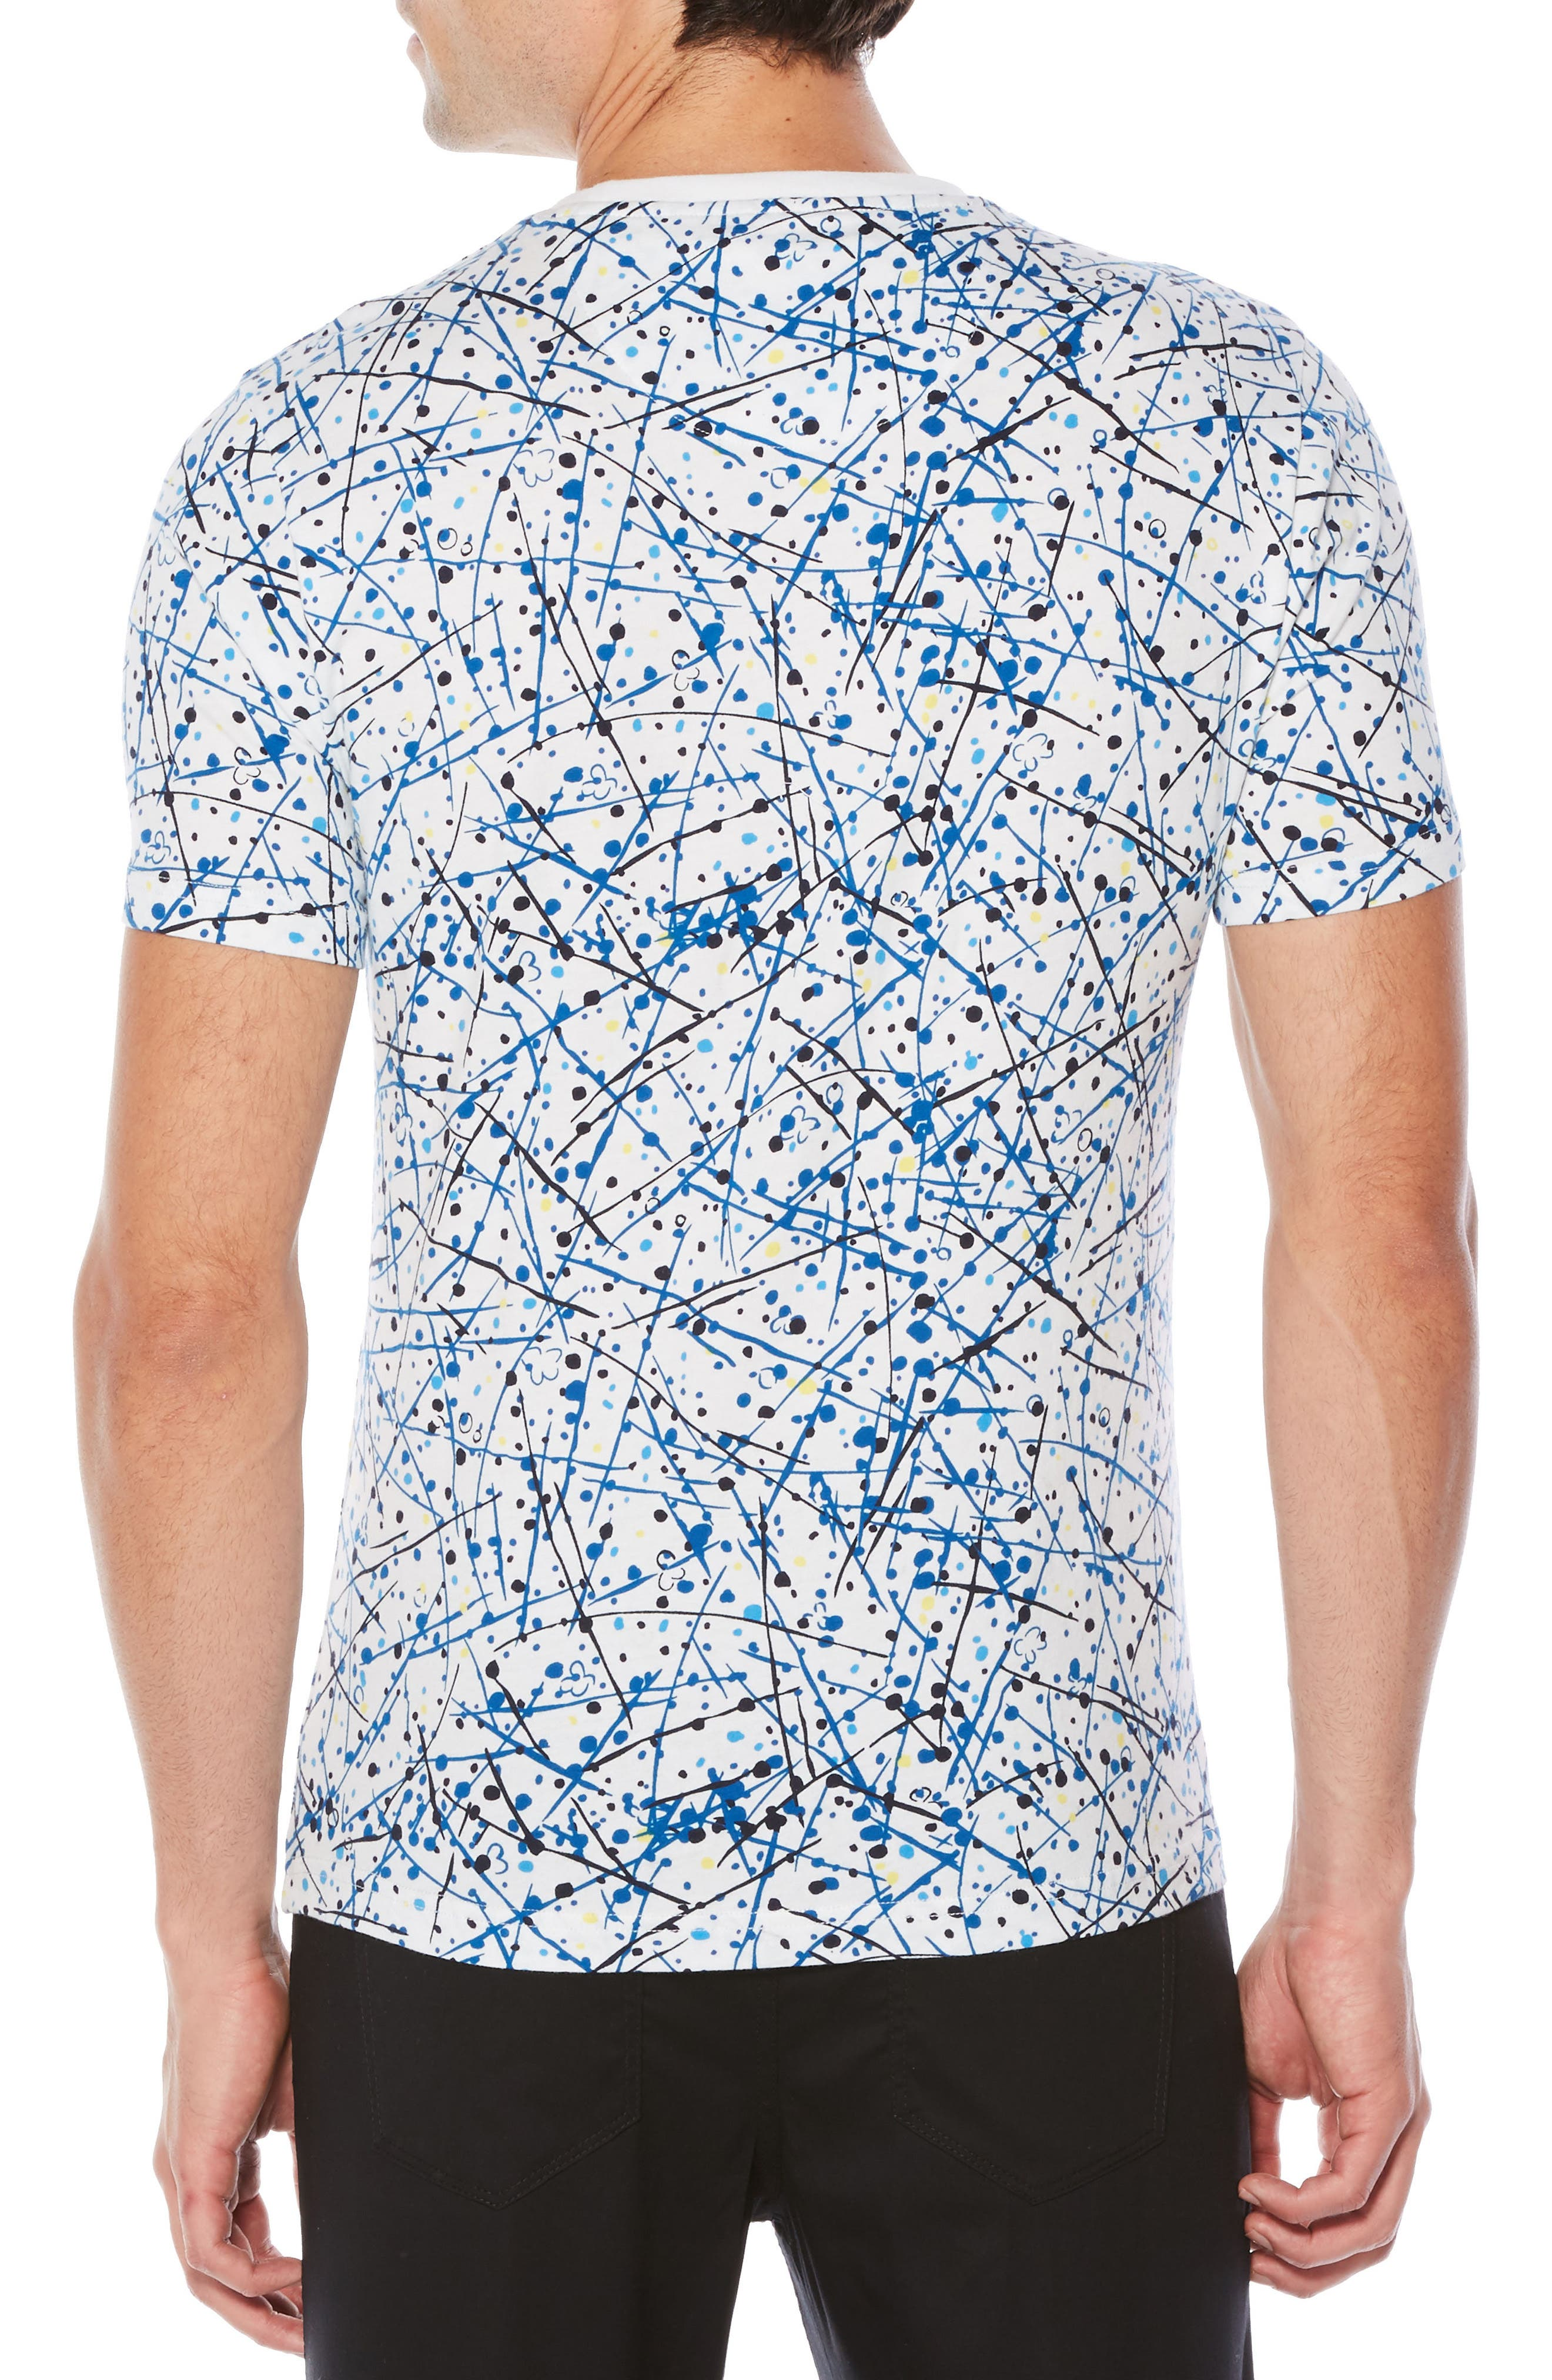 Allover Splatter Print T-Shirt,                             Alternate thumbnail 2, color,                             Bright White